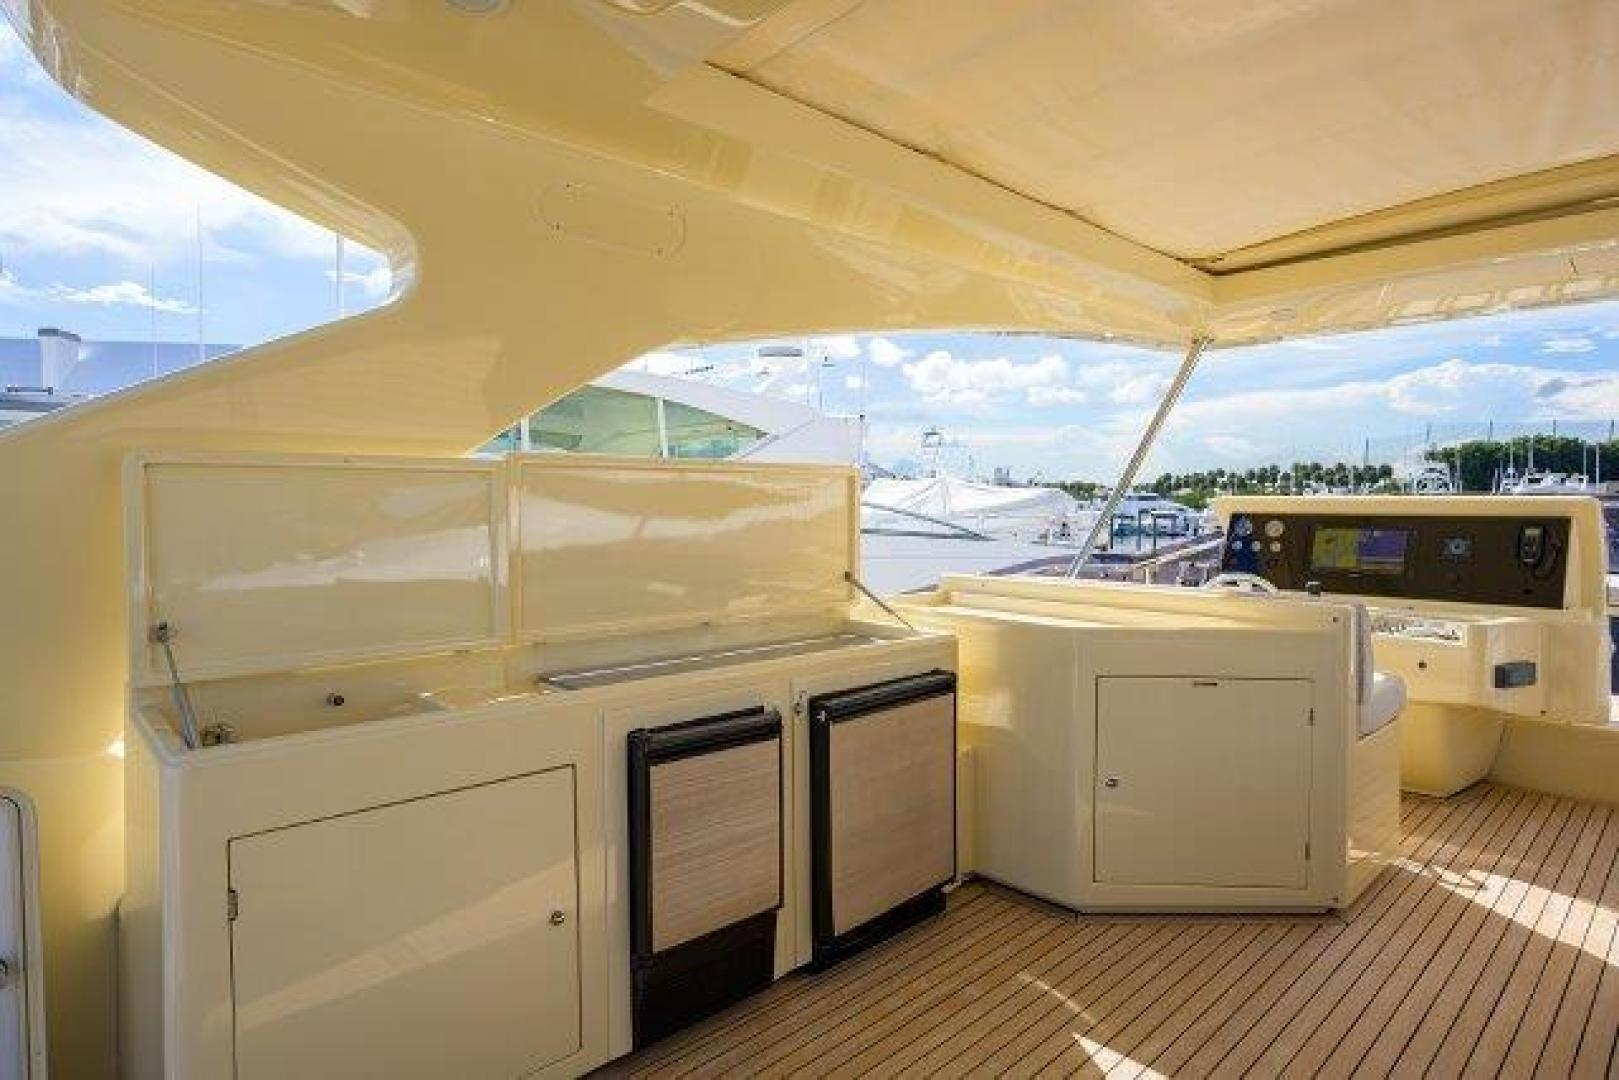 Ferretti Yachts-Altura 840 2010-MISS ALLIED Jupiter-Florida-United States-Bridge Deck-1518347 | Thumbnail